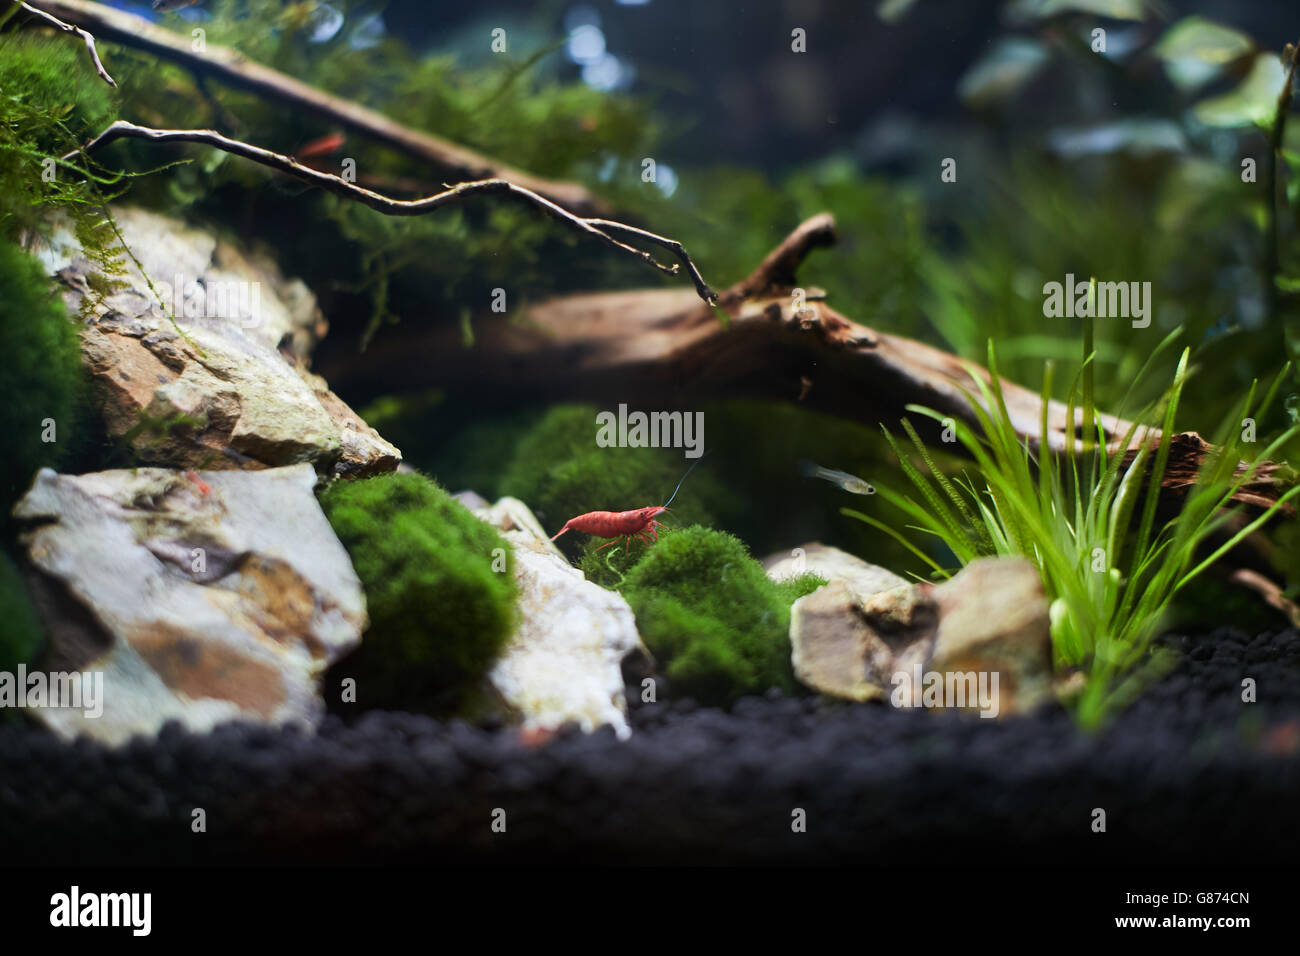 Nano aquarium Stock Photo